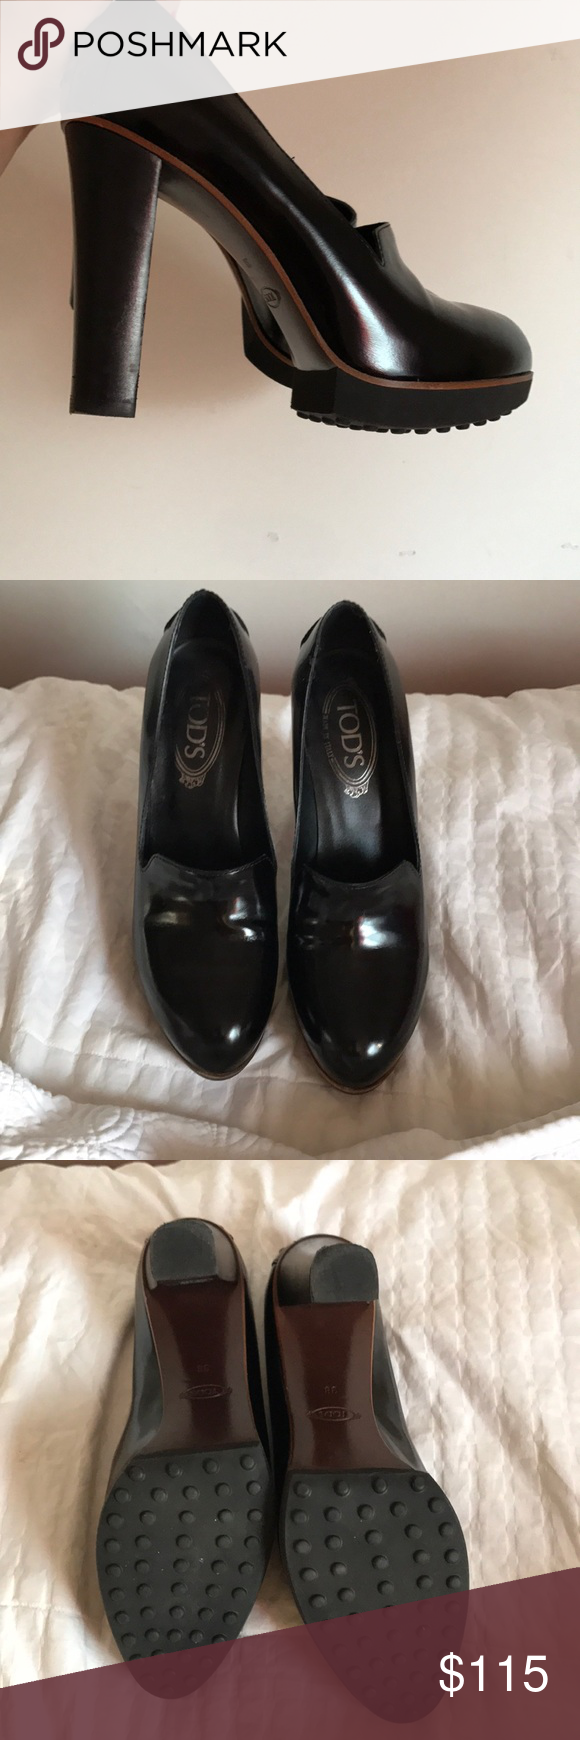 Black Platforms - Tod's 4 inch platform - black leather and never been worn  - Super comfortable  ~Not exact picture but similar~ Tod's Shoes Platforms